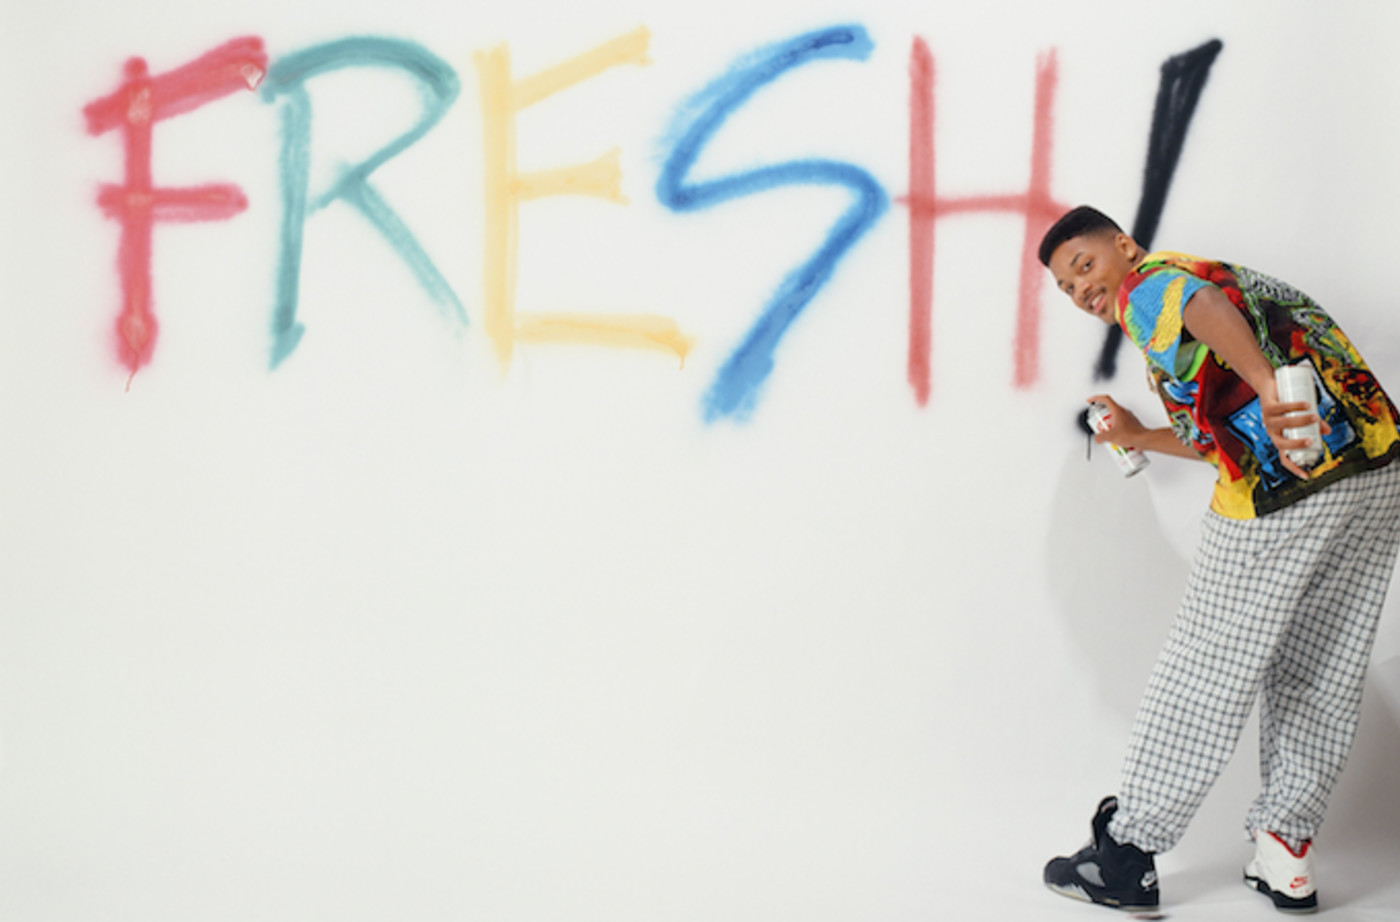 'Fresh Prince of Bel Air' star Will Smith